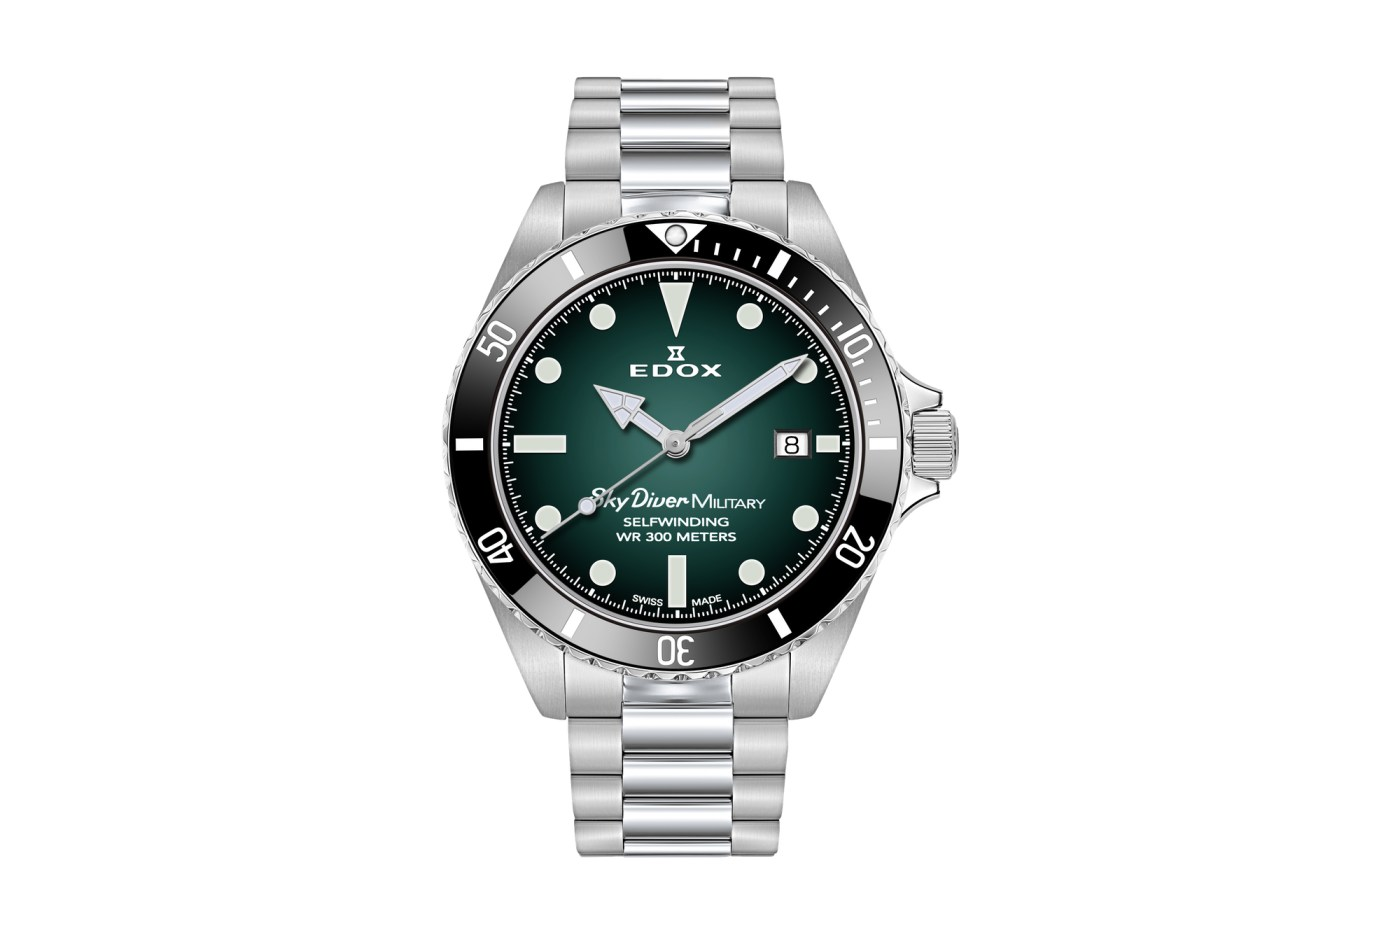 Edox Skydiver Military Limited Edition front